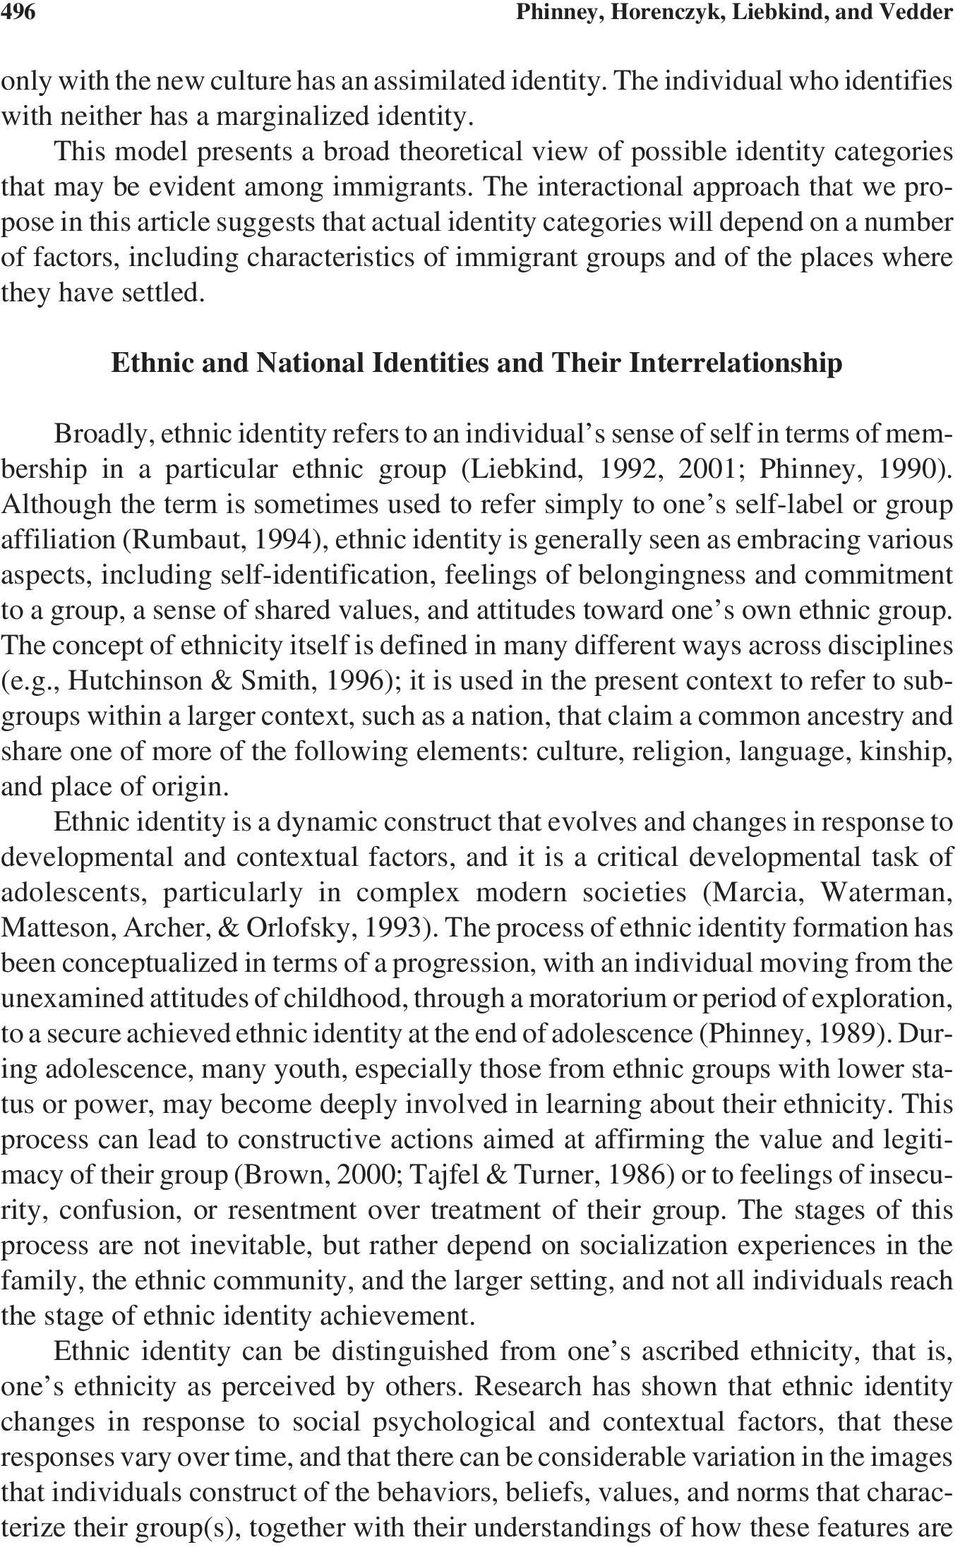 The interactional approach that we propose in this article suggests that actual identity categories will depend on a number of factors, including characteristics of immigrant groups and of the places